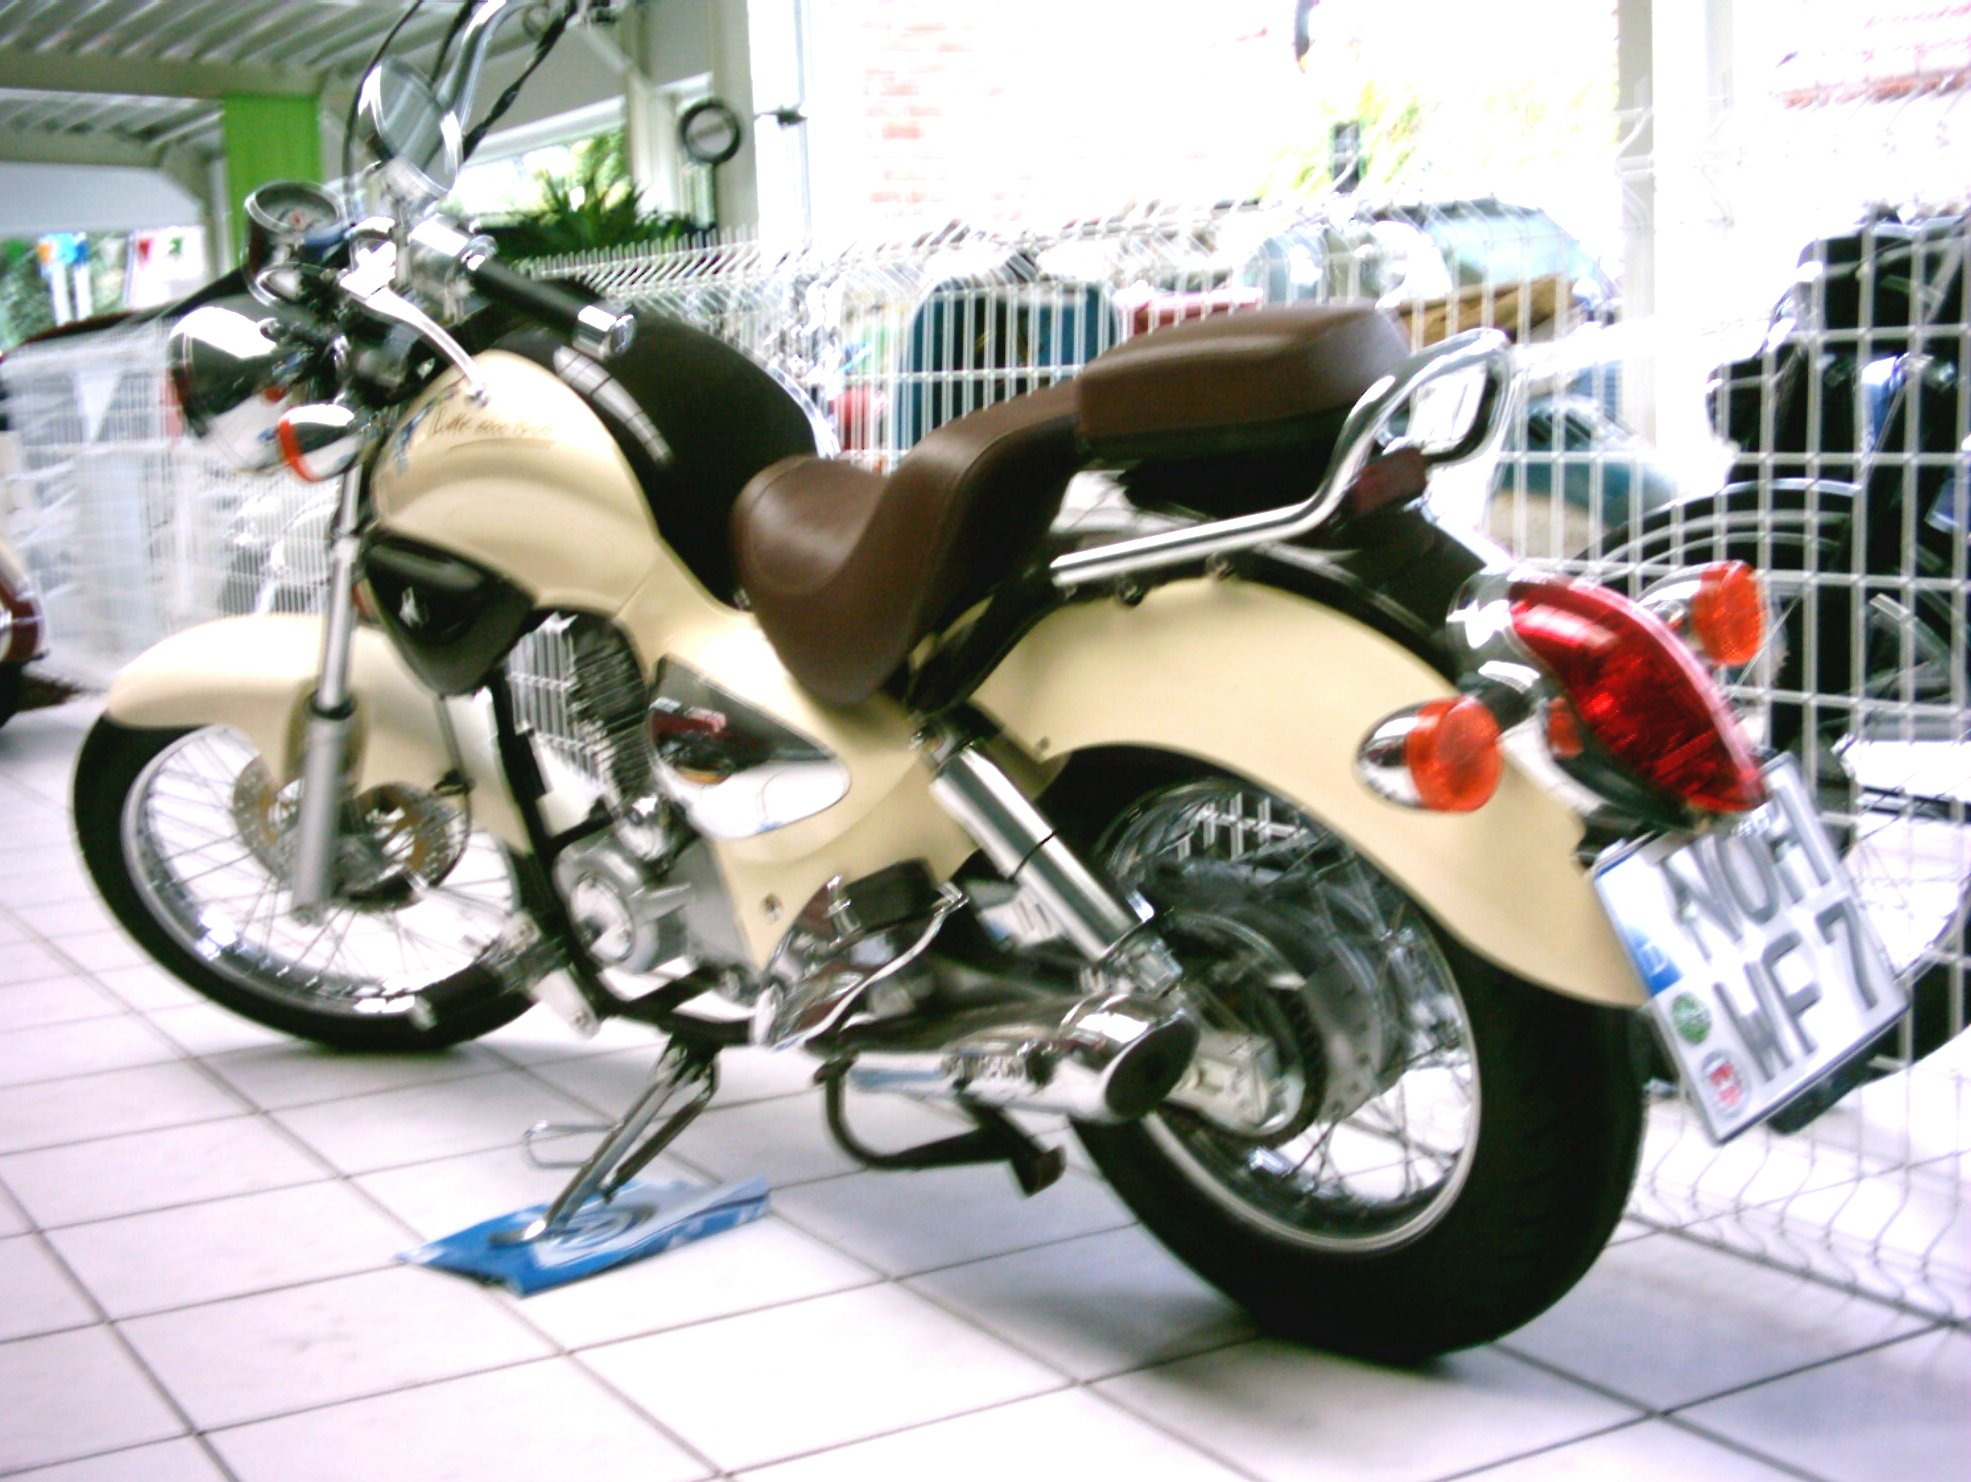 kymco hipster 125-pic. 1